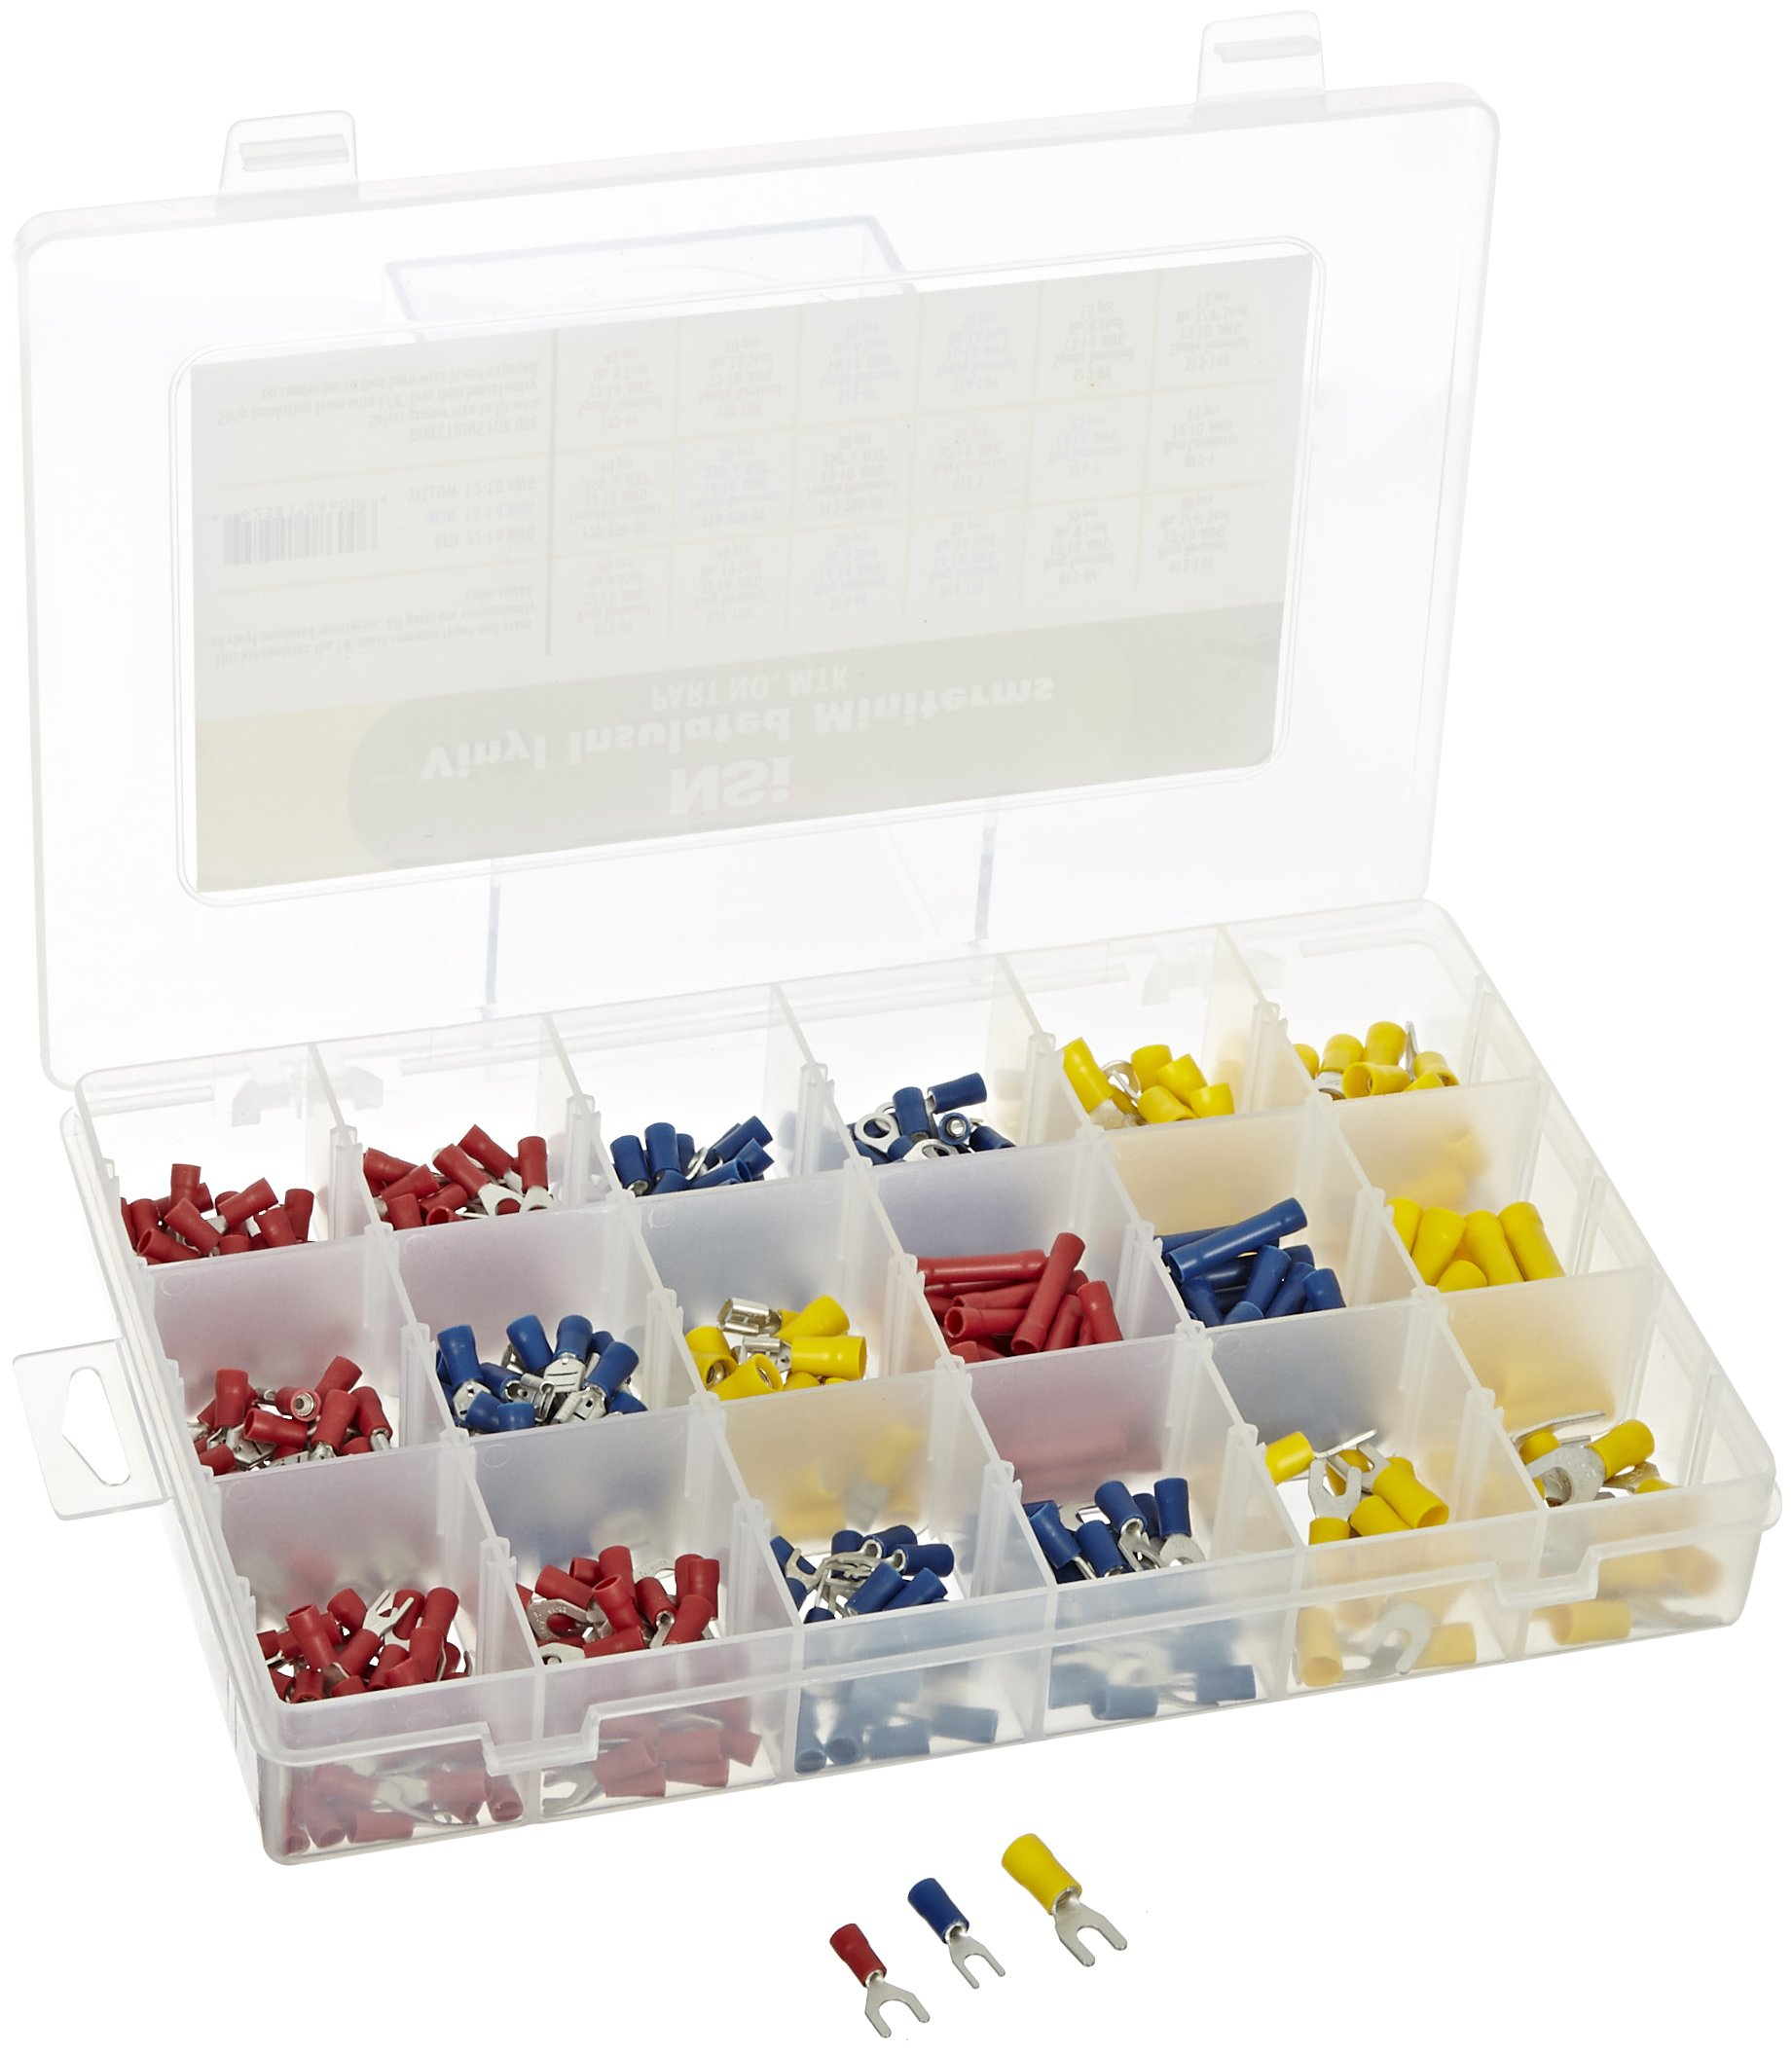 NSi Industries MTK-2 180-pc Miniterm Kit (with Tool) by NSi Industries (Image #1)